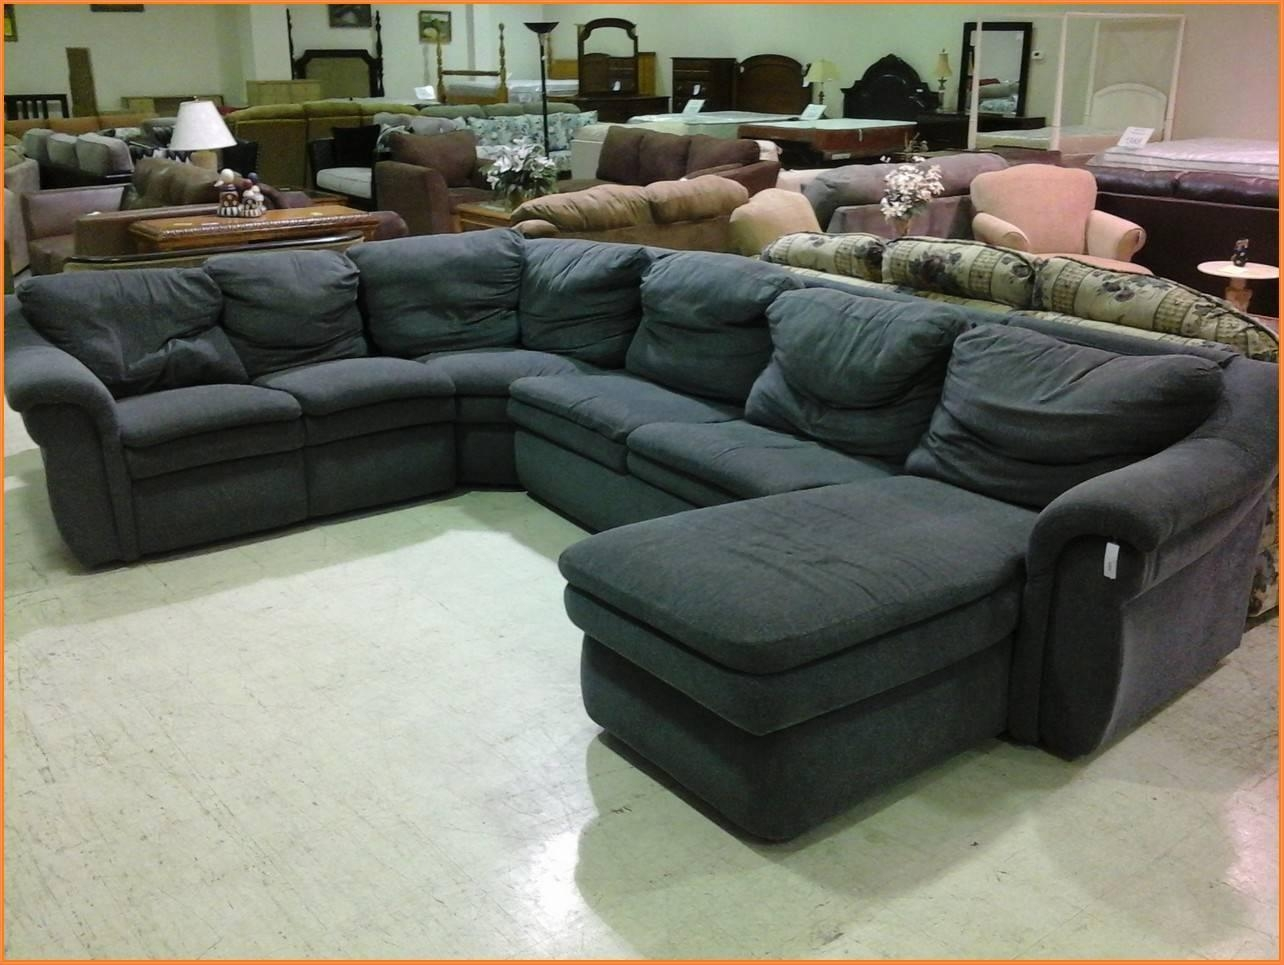 Sofas Center : Inspirational Lazy Boy Sectional Sofa In Office For Lazy Boy Sectional (Image 18 of 20)